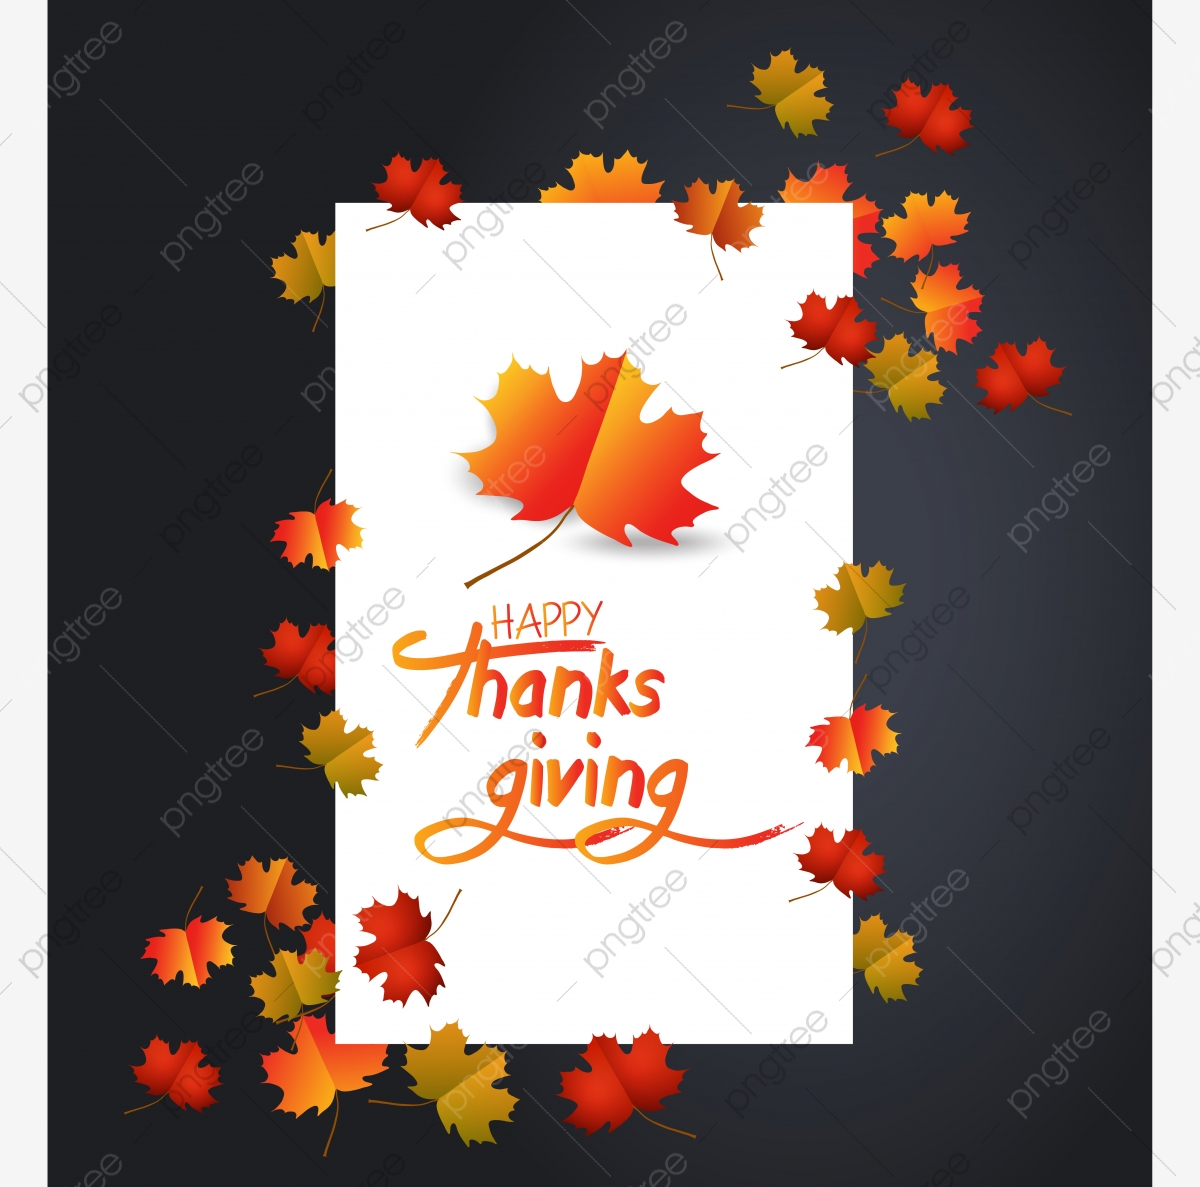 Download Fall / Autumn / Happy Thanksgiving Kids Vector Clipart Image